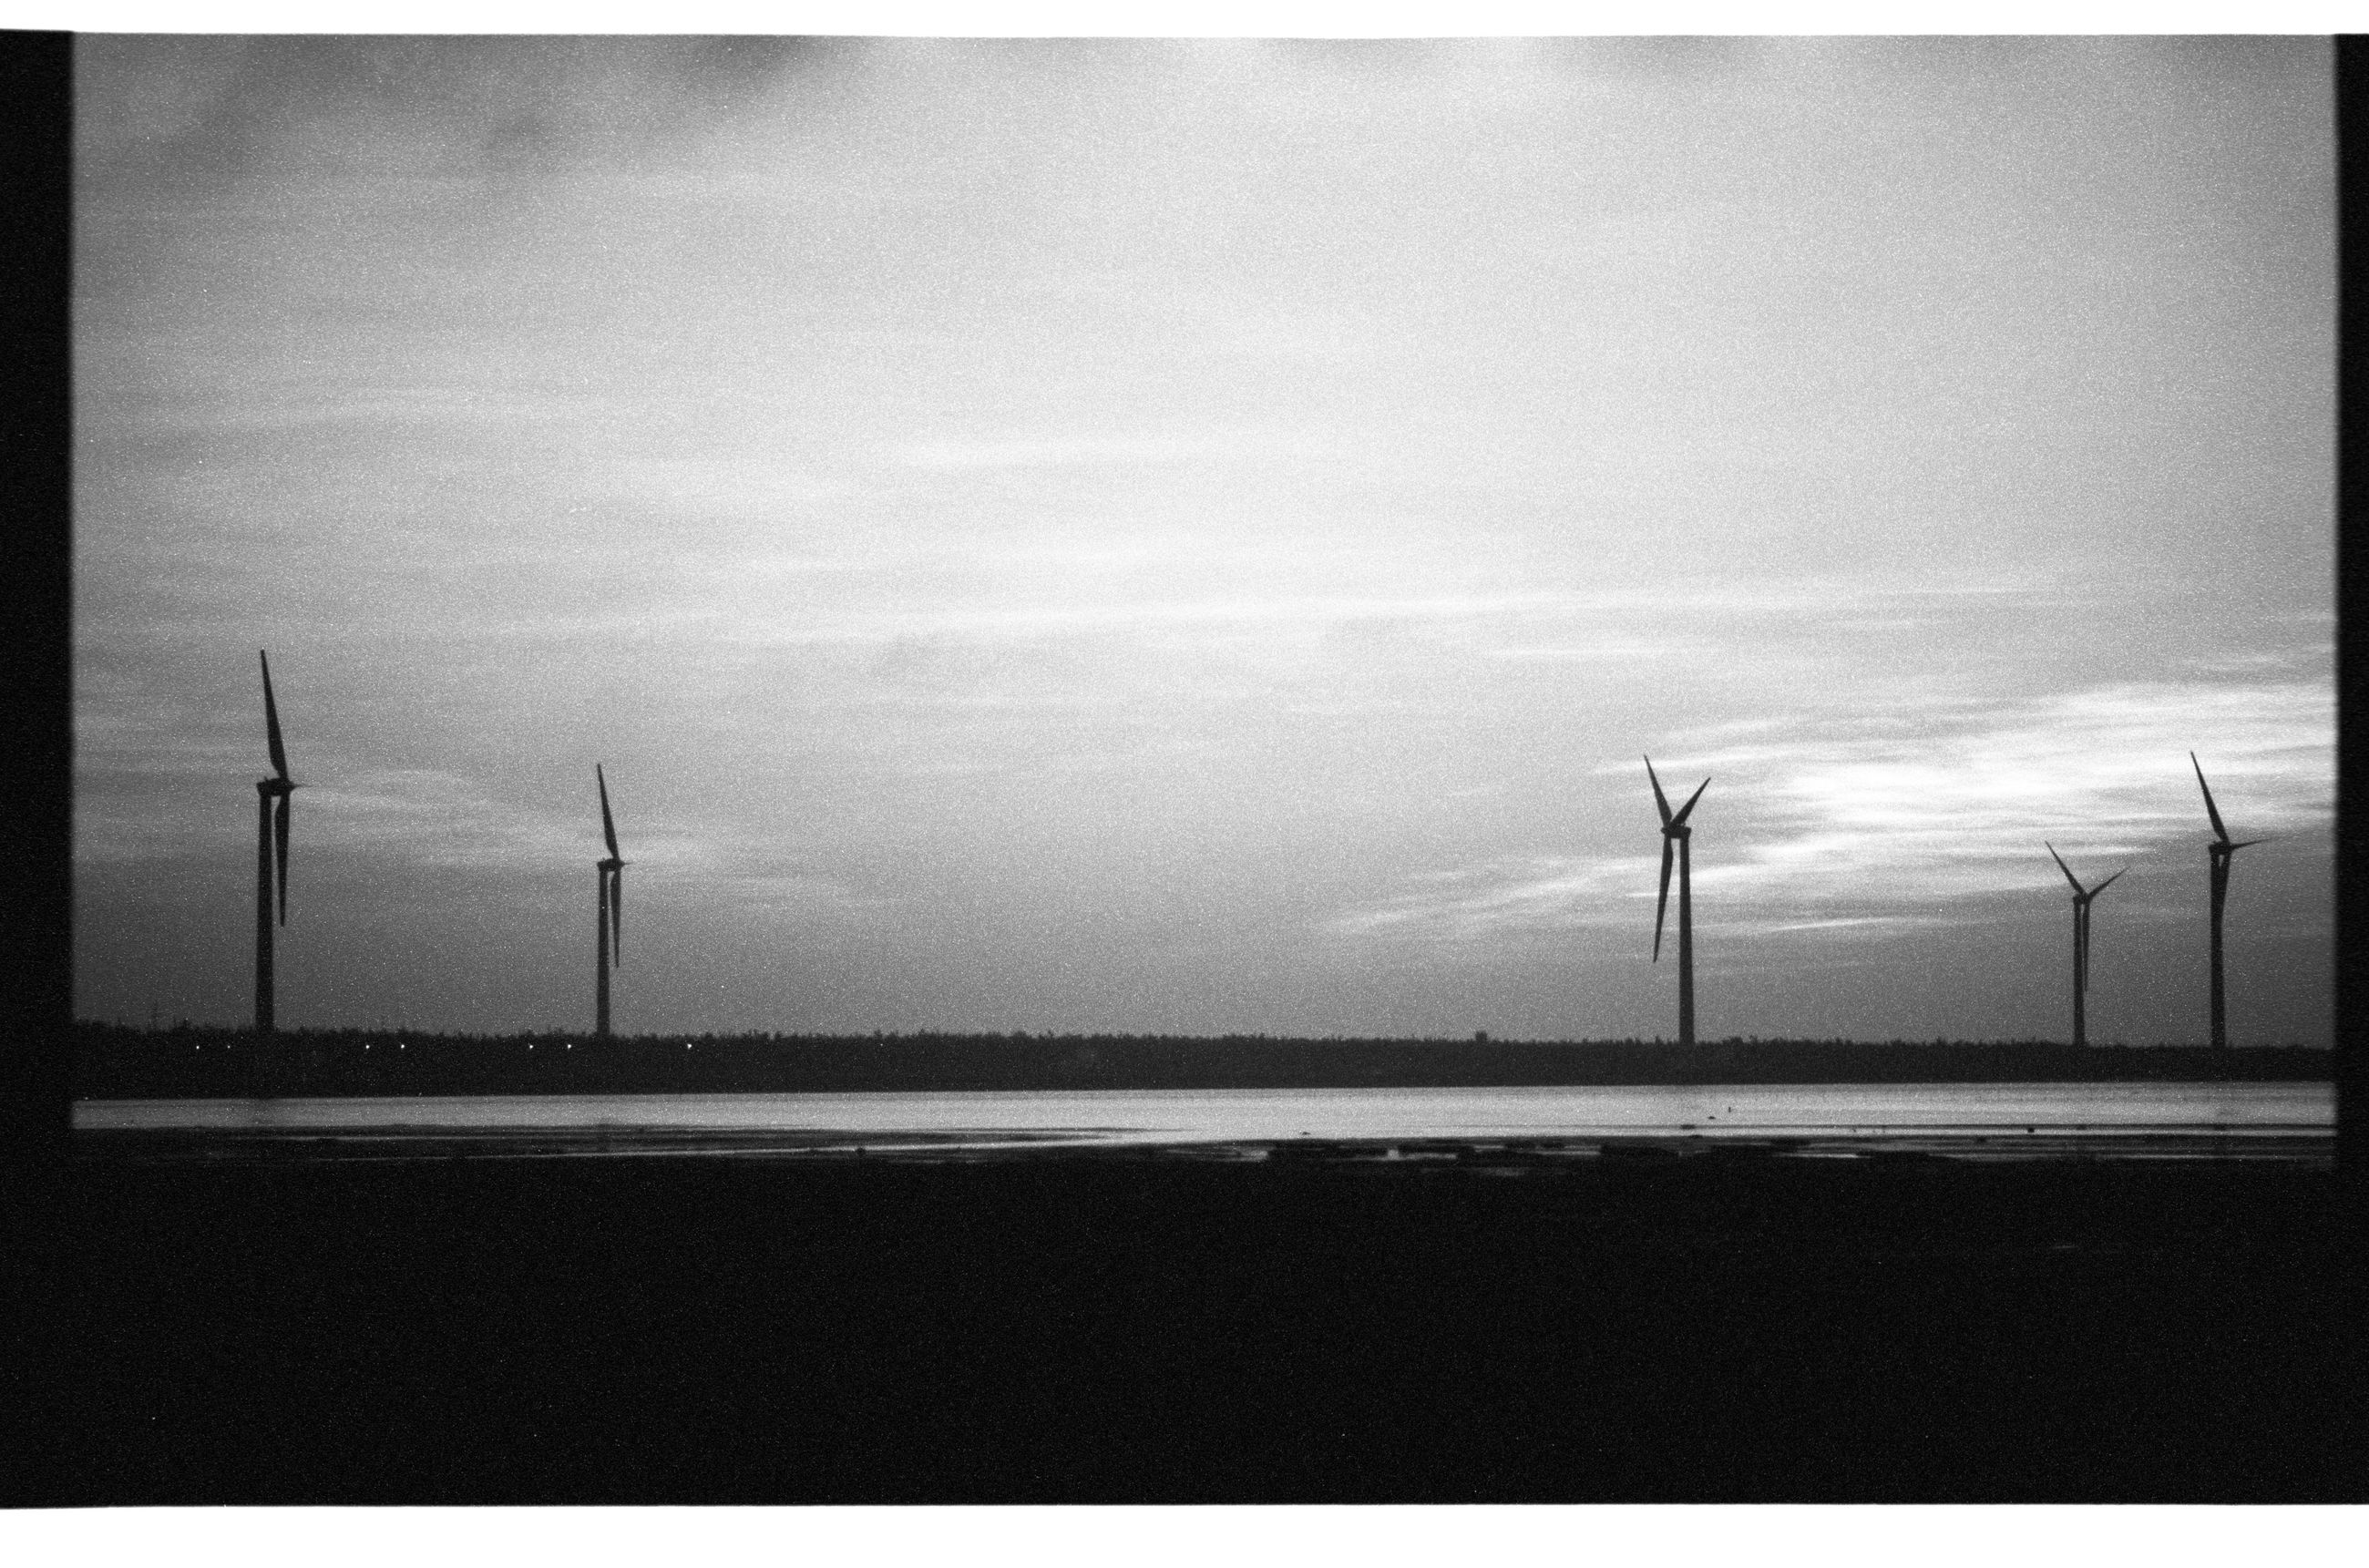 day, no people, sky, environmental conservation, nature, road, outdoors, alternative energy